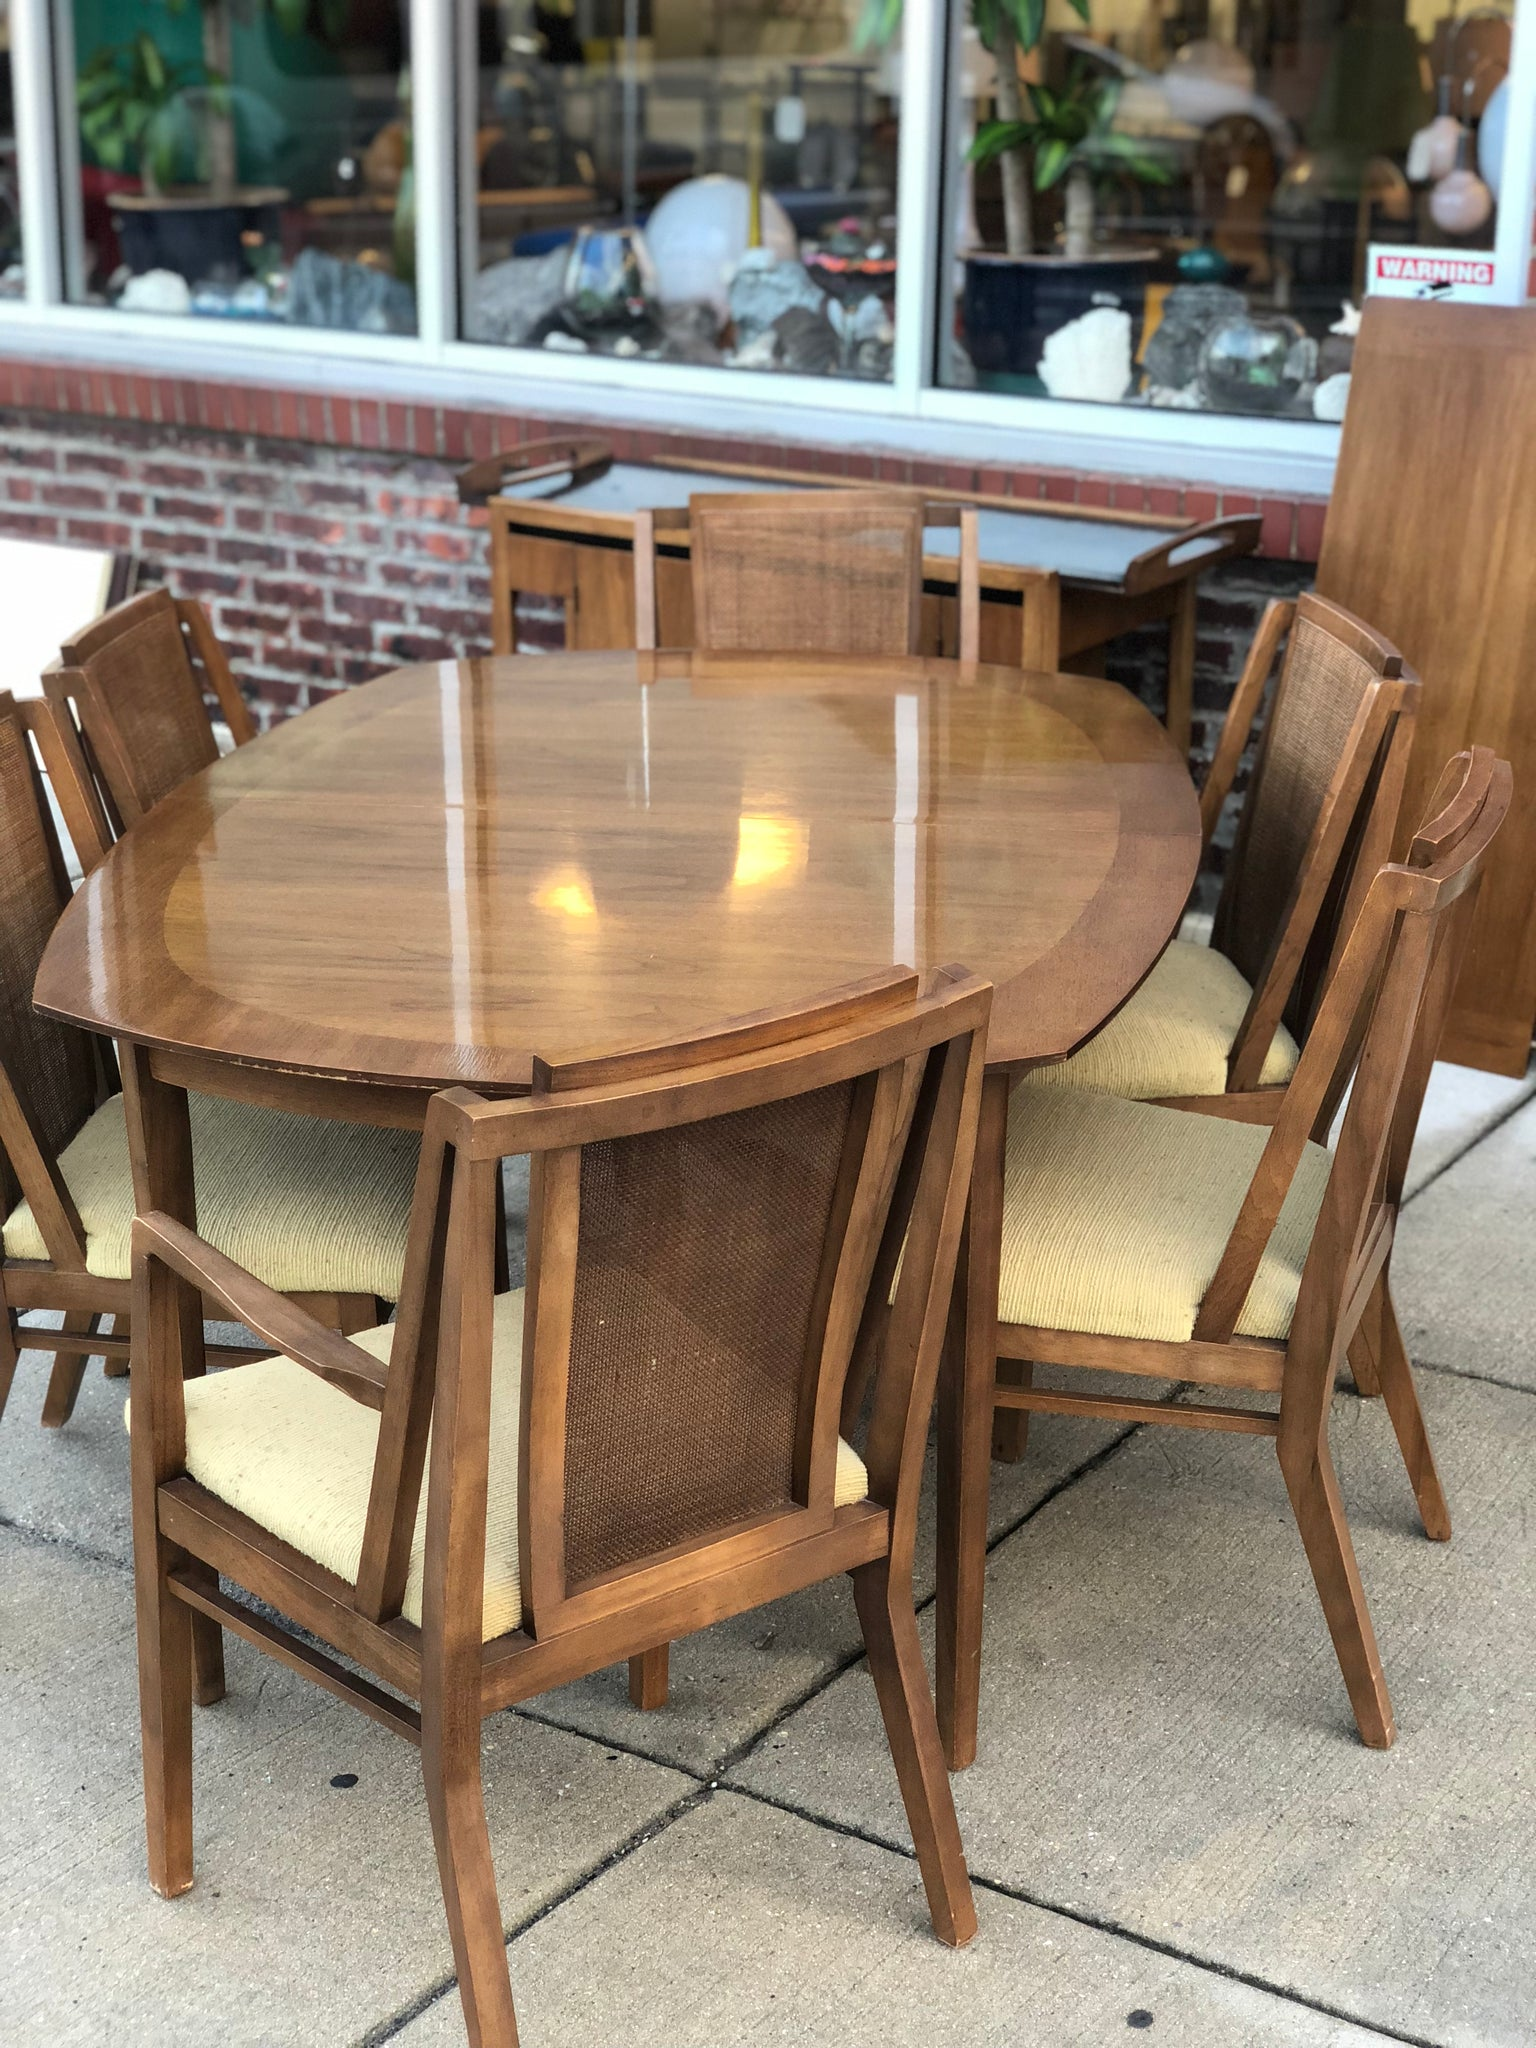 Enjoyable Drexel Dining Set Table Five Chairs Hutch Jus Mid Bralicious Painted Fabric Chair Ideas Braliciousco